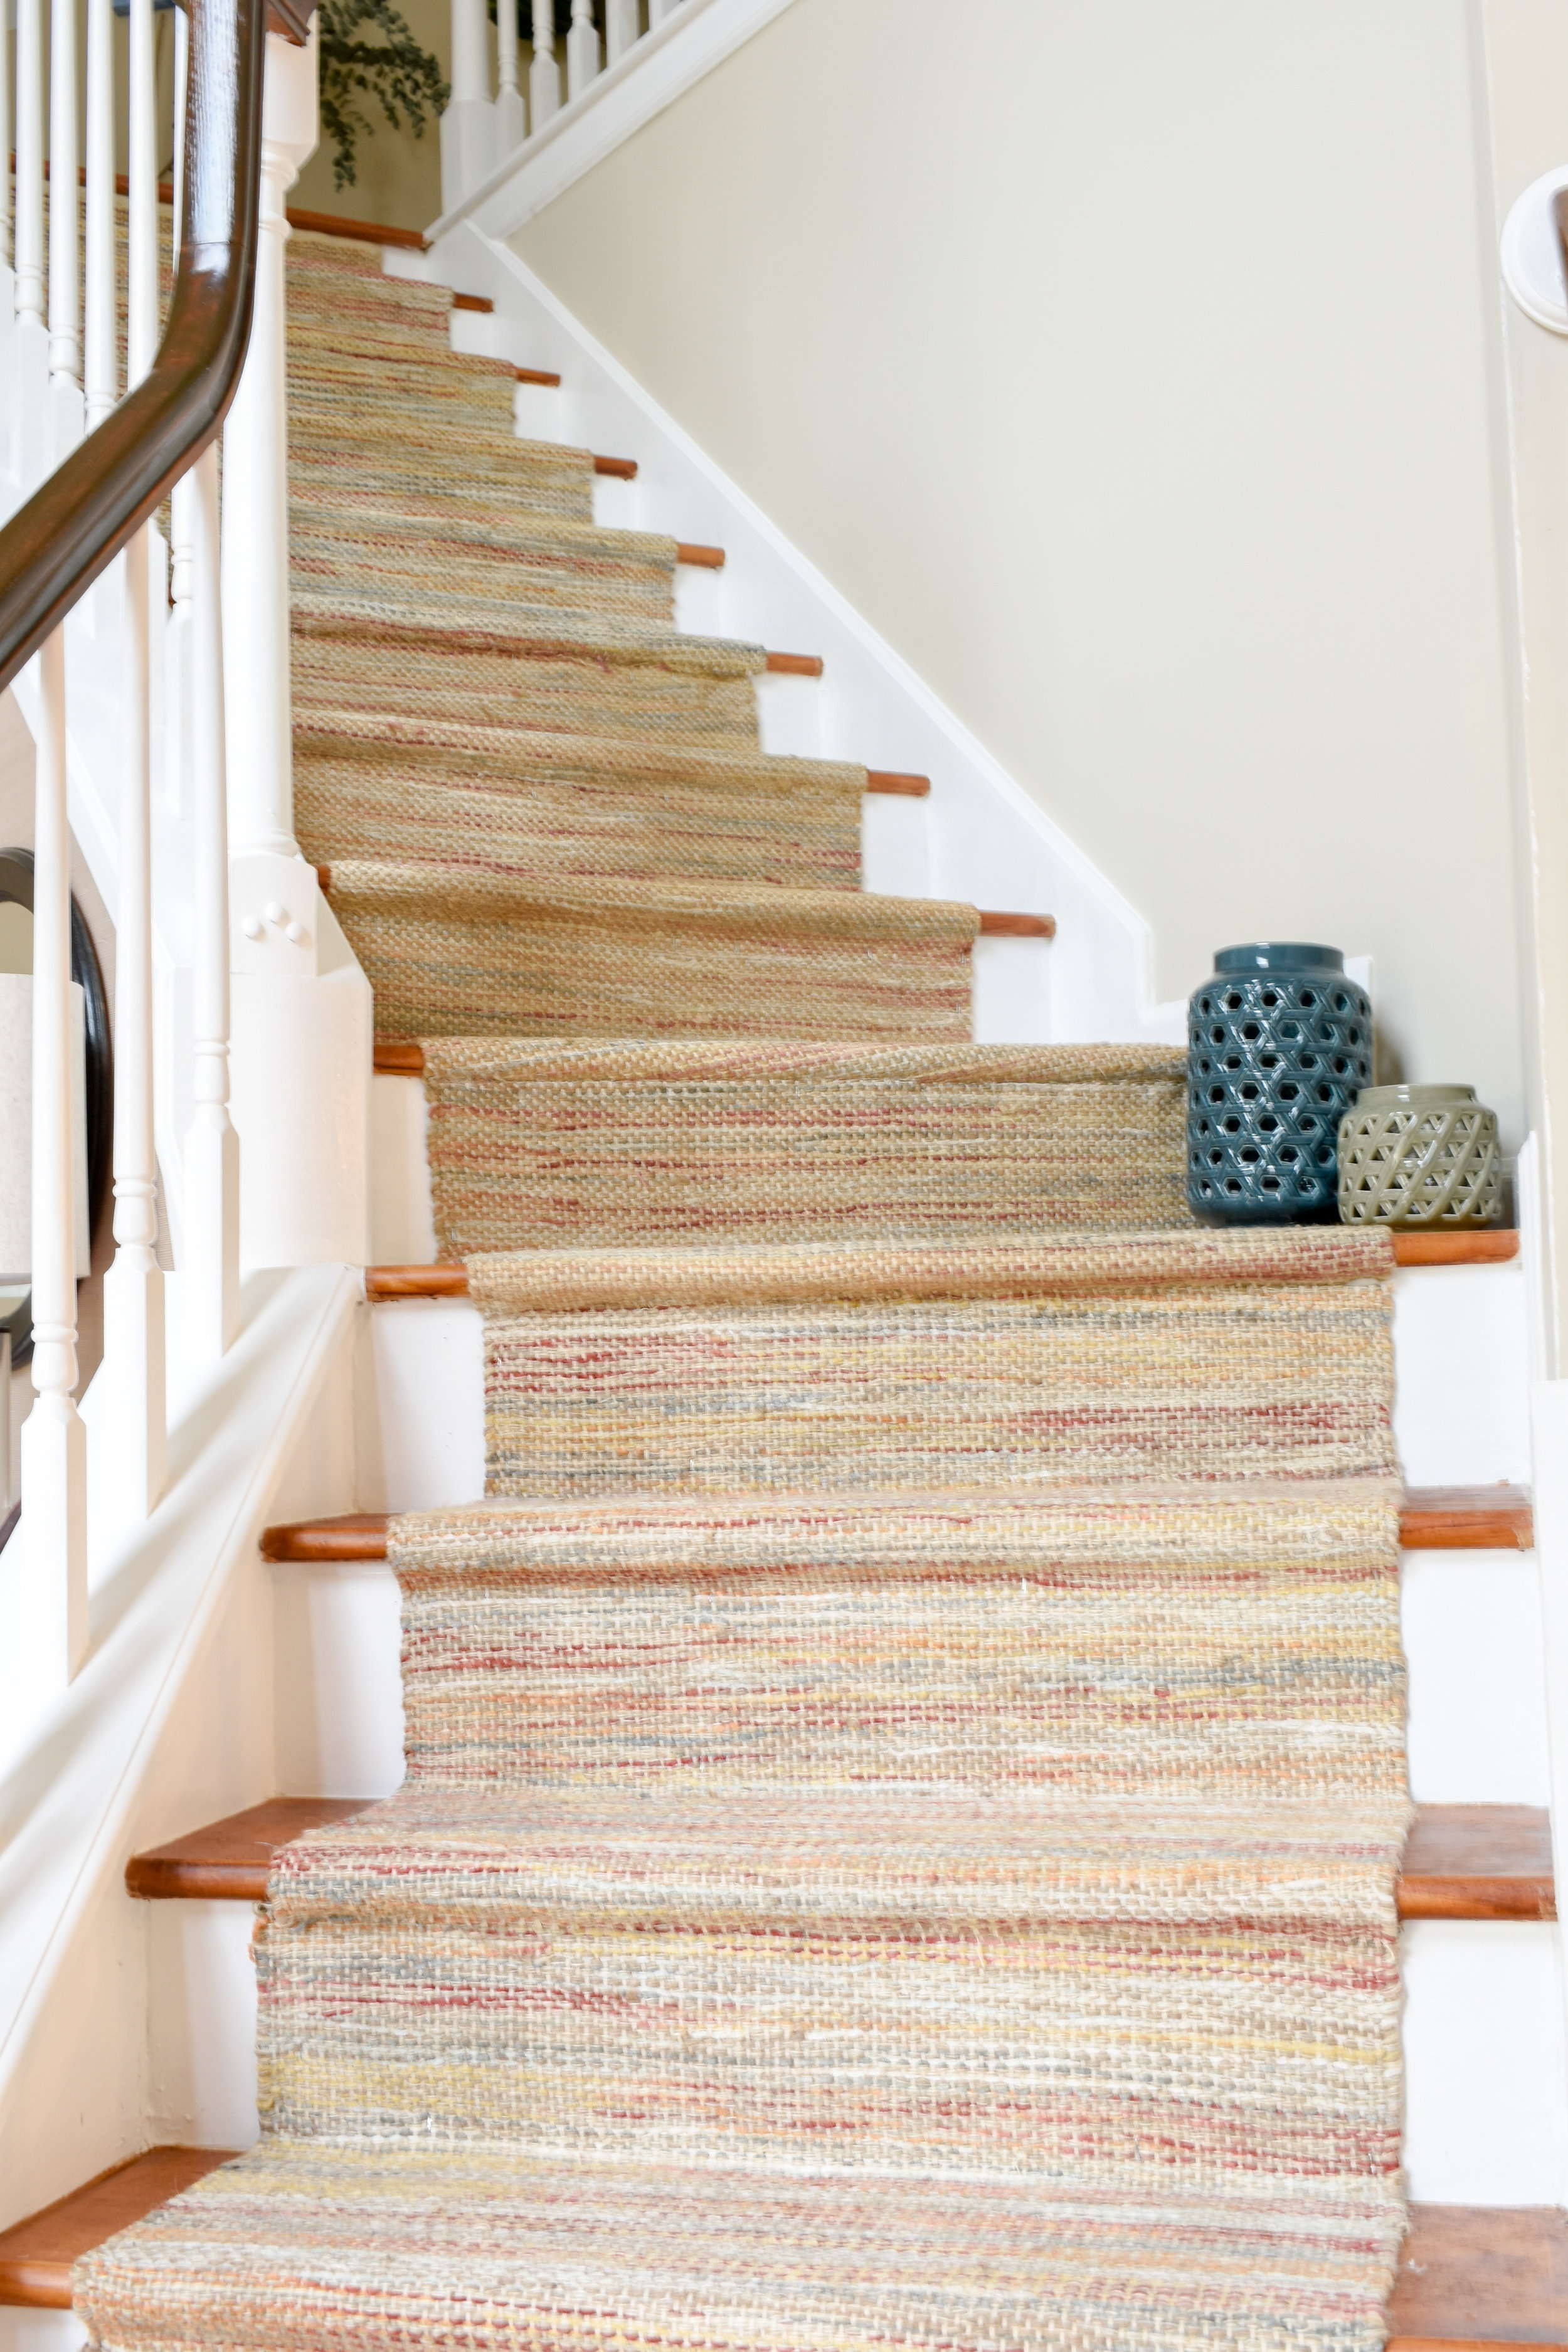 Diy Hardwood Staircase Makeover Replacing Carpet With Wood Treads | Cost Of Carpet For Stairs And Landing | Sisal Stair Runner | Handrail | Wood | Carpet Runner | Hardwood